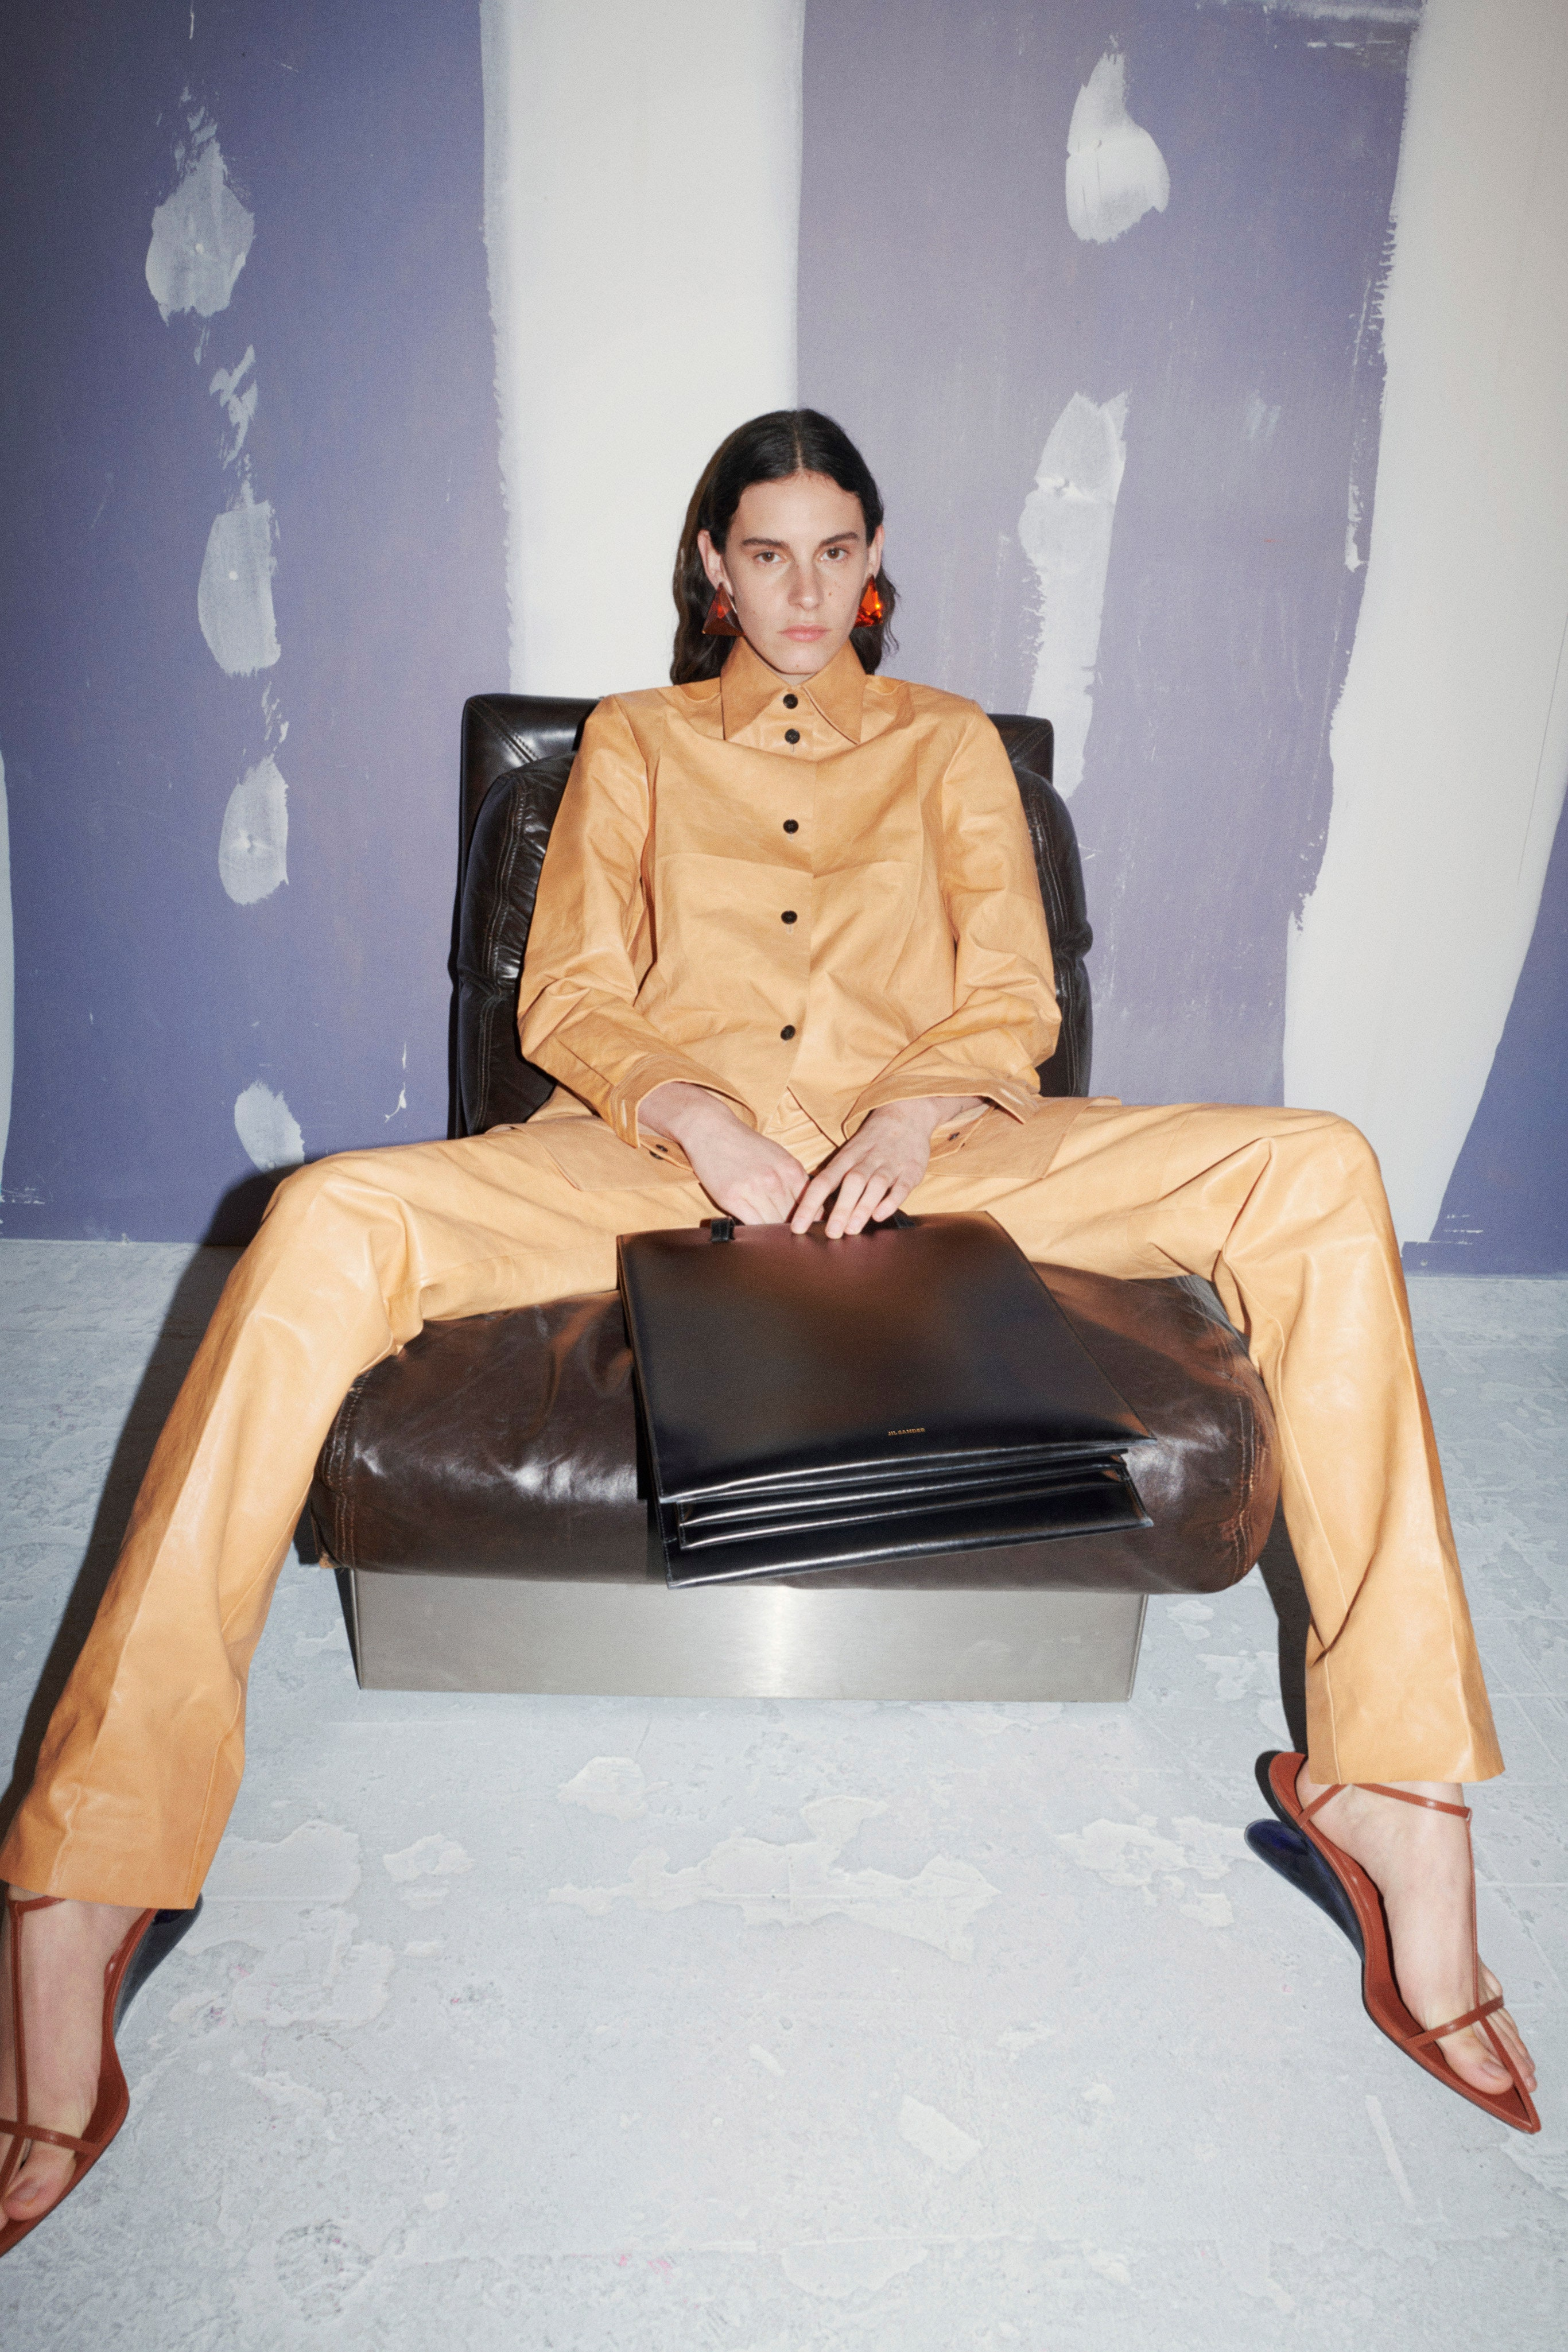 For walks in the fresh air: A seasonal collection of Jil Sander arrived at Asthik (photo 17)